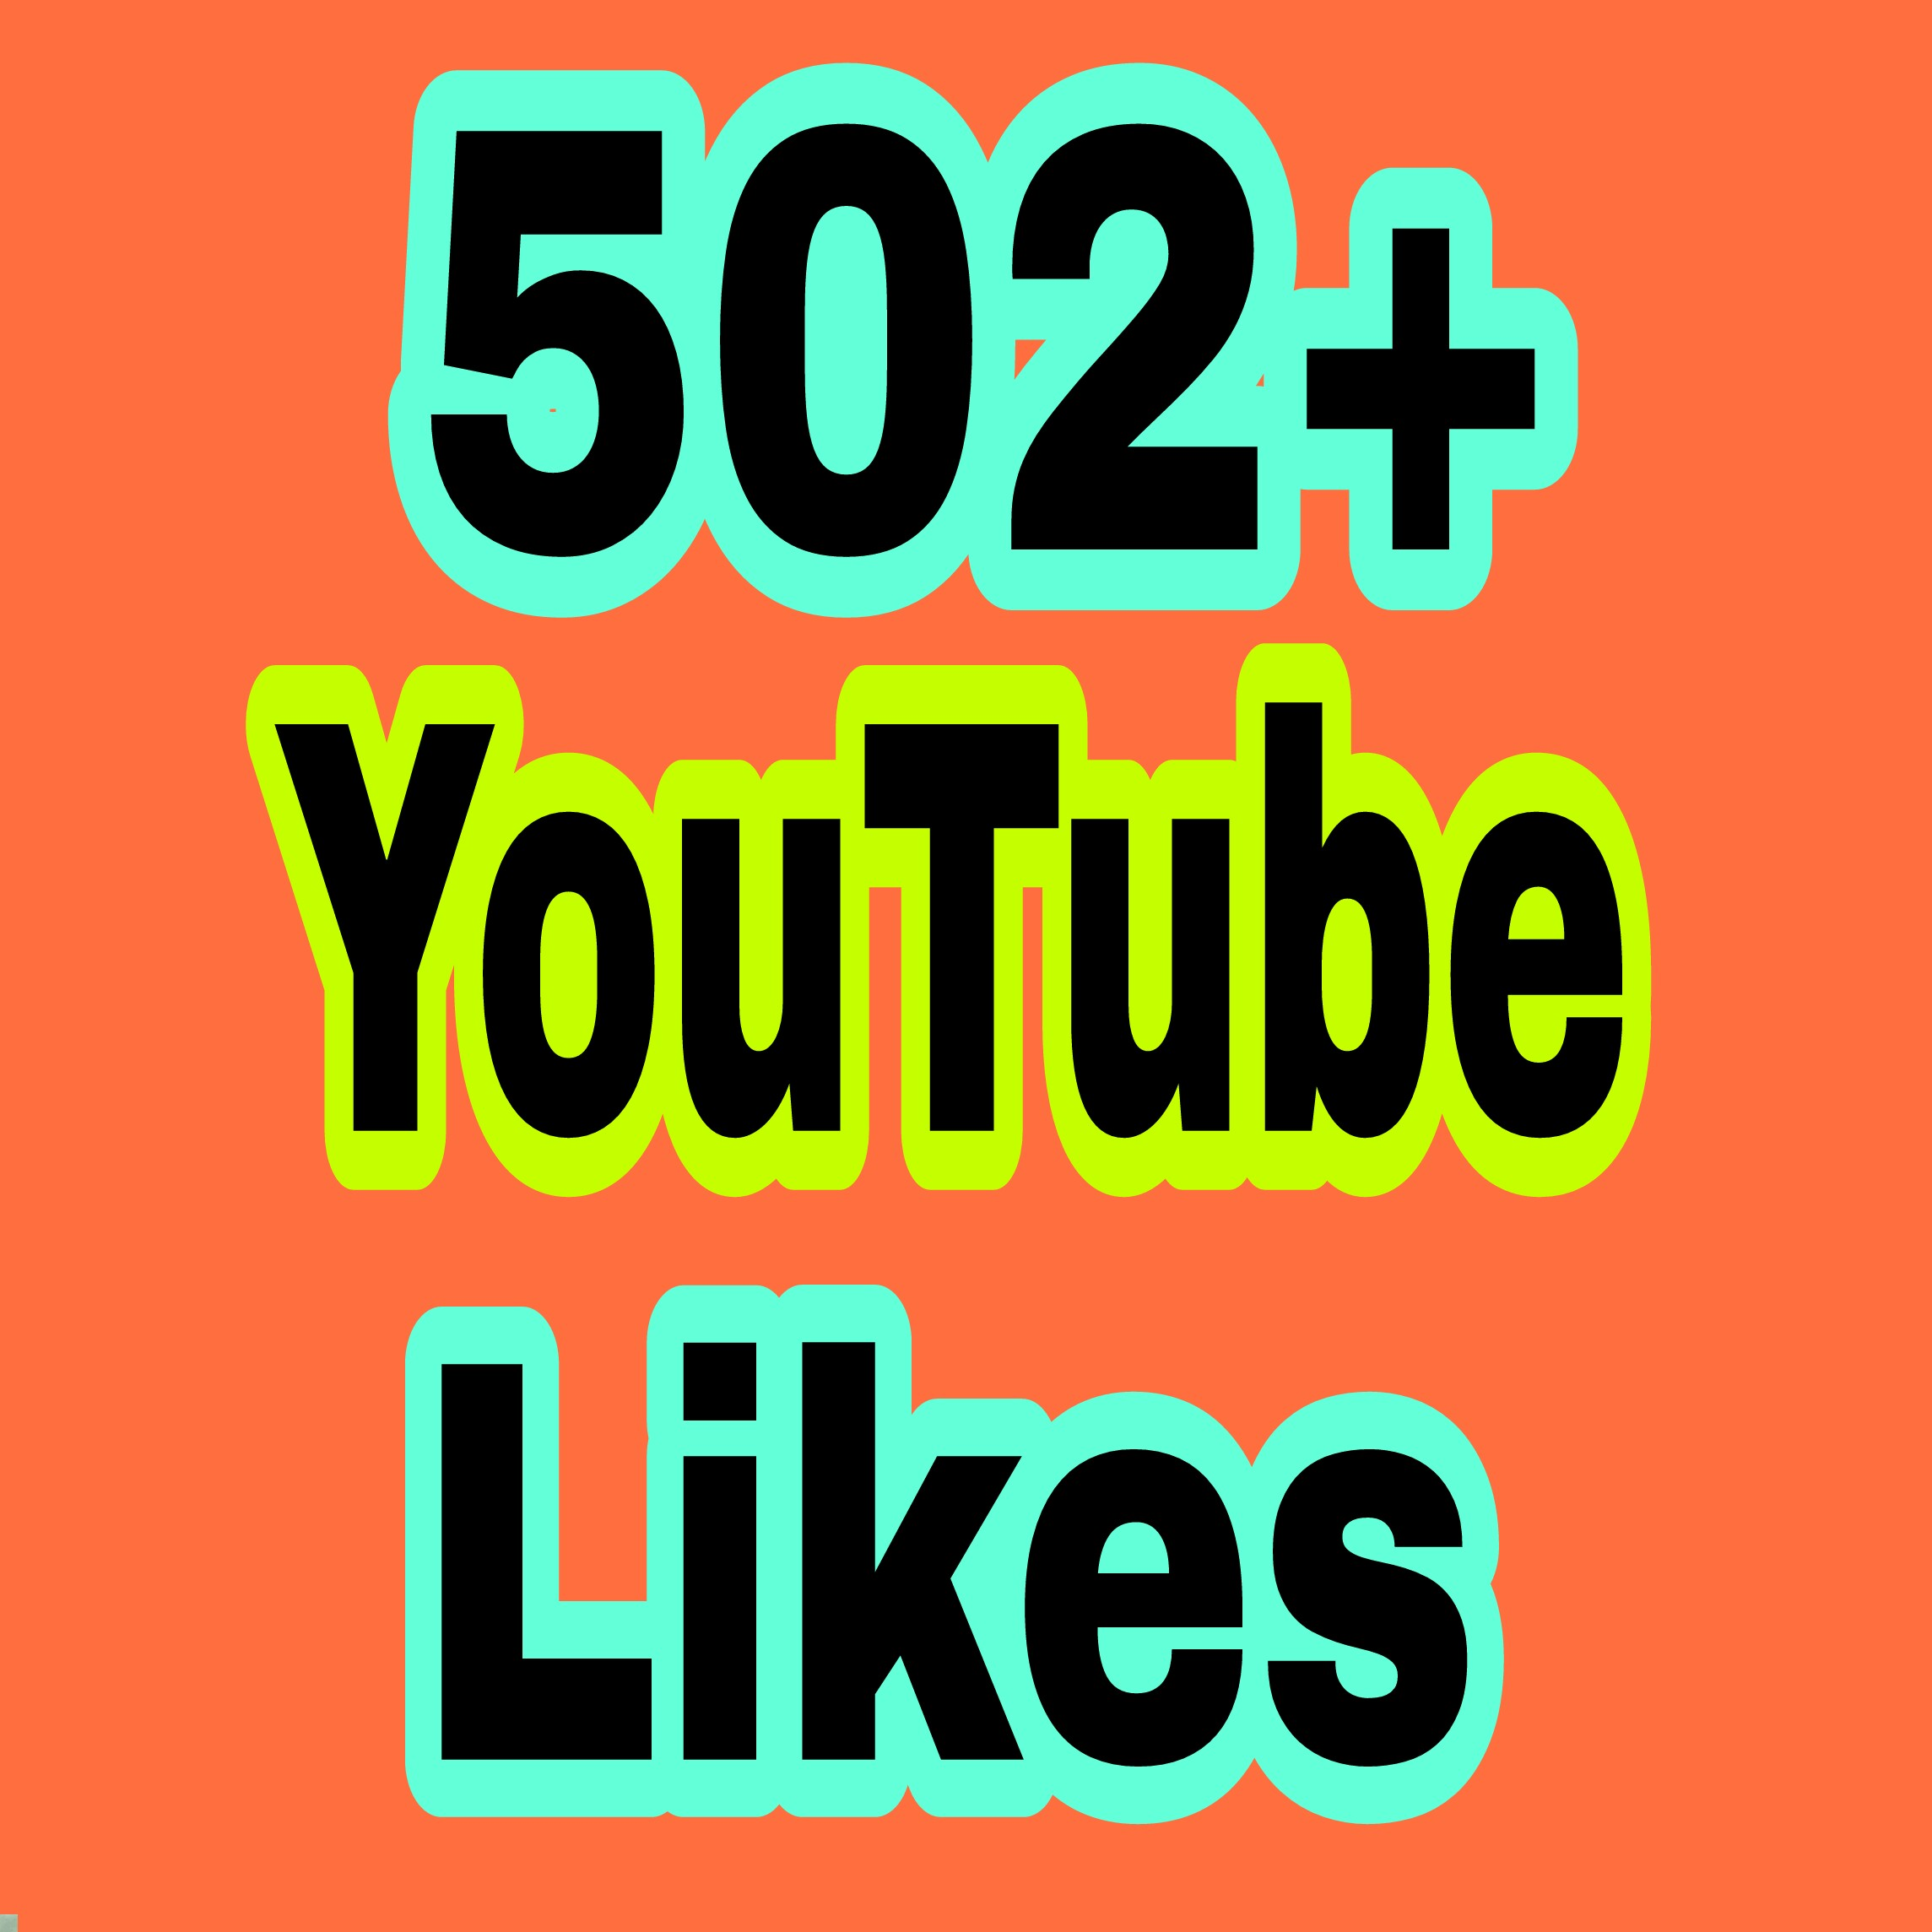 I provide 502+ You Tube video L ikes  in 7-9 hours completed just